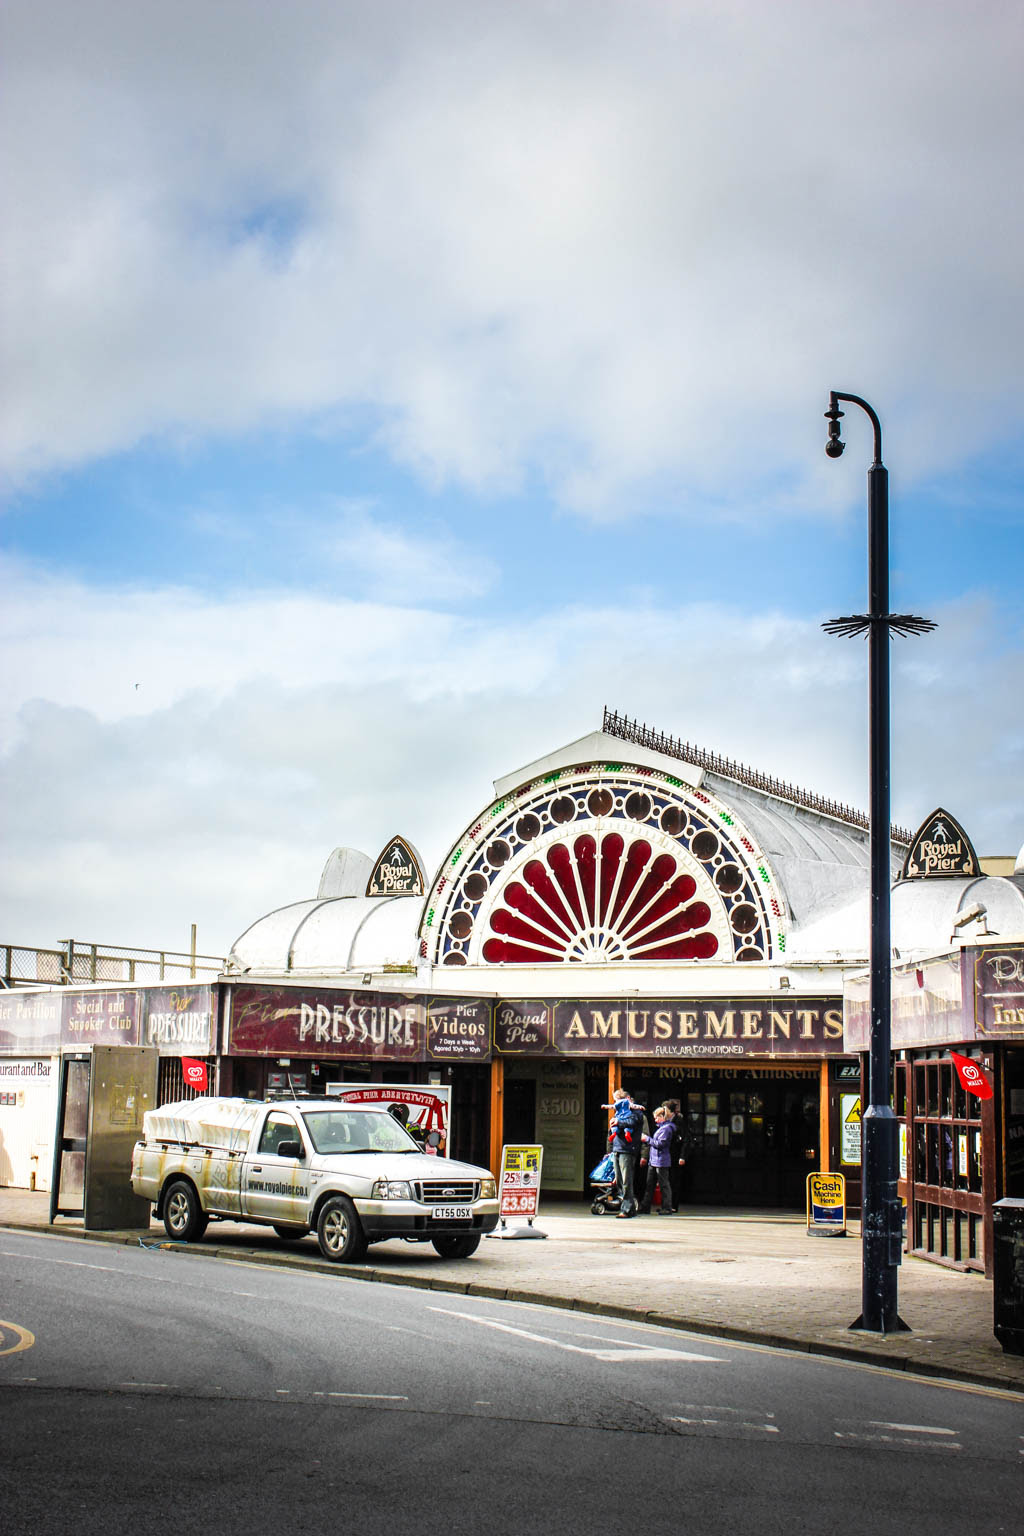 Image result for images arcades seaside aberystwyth